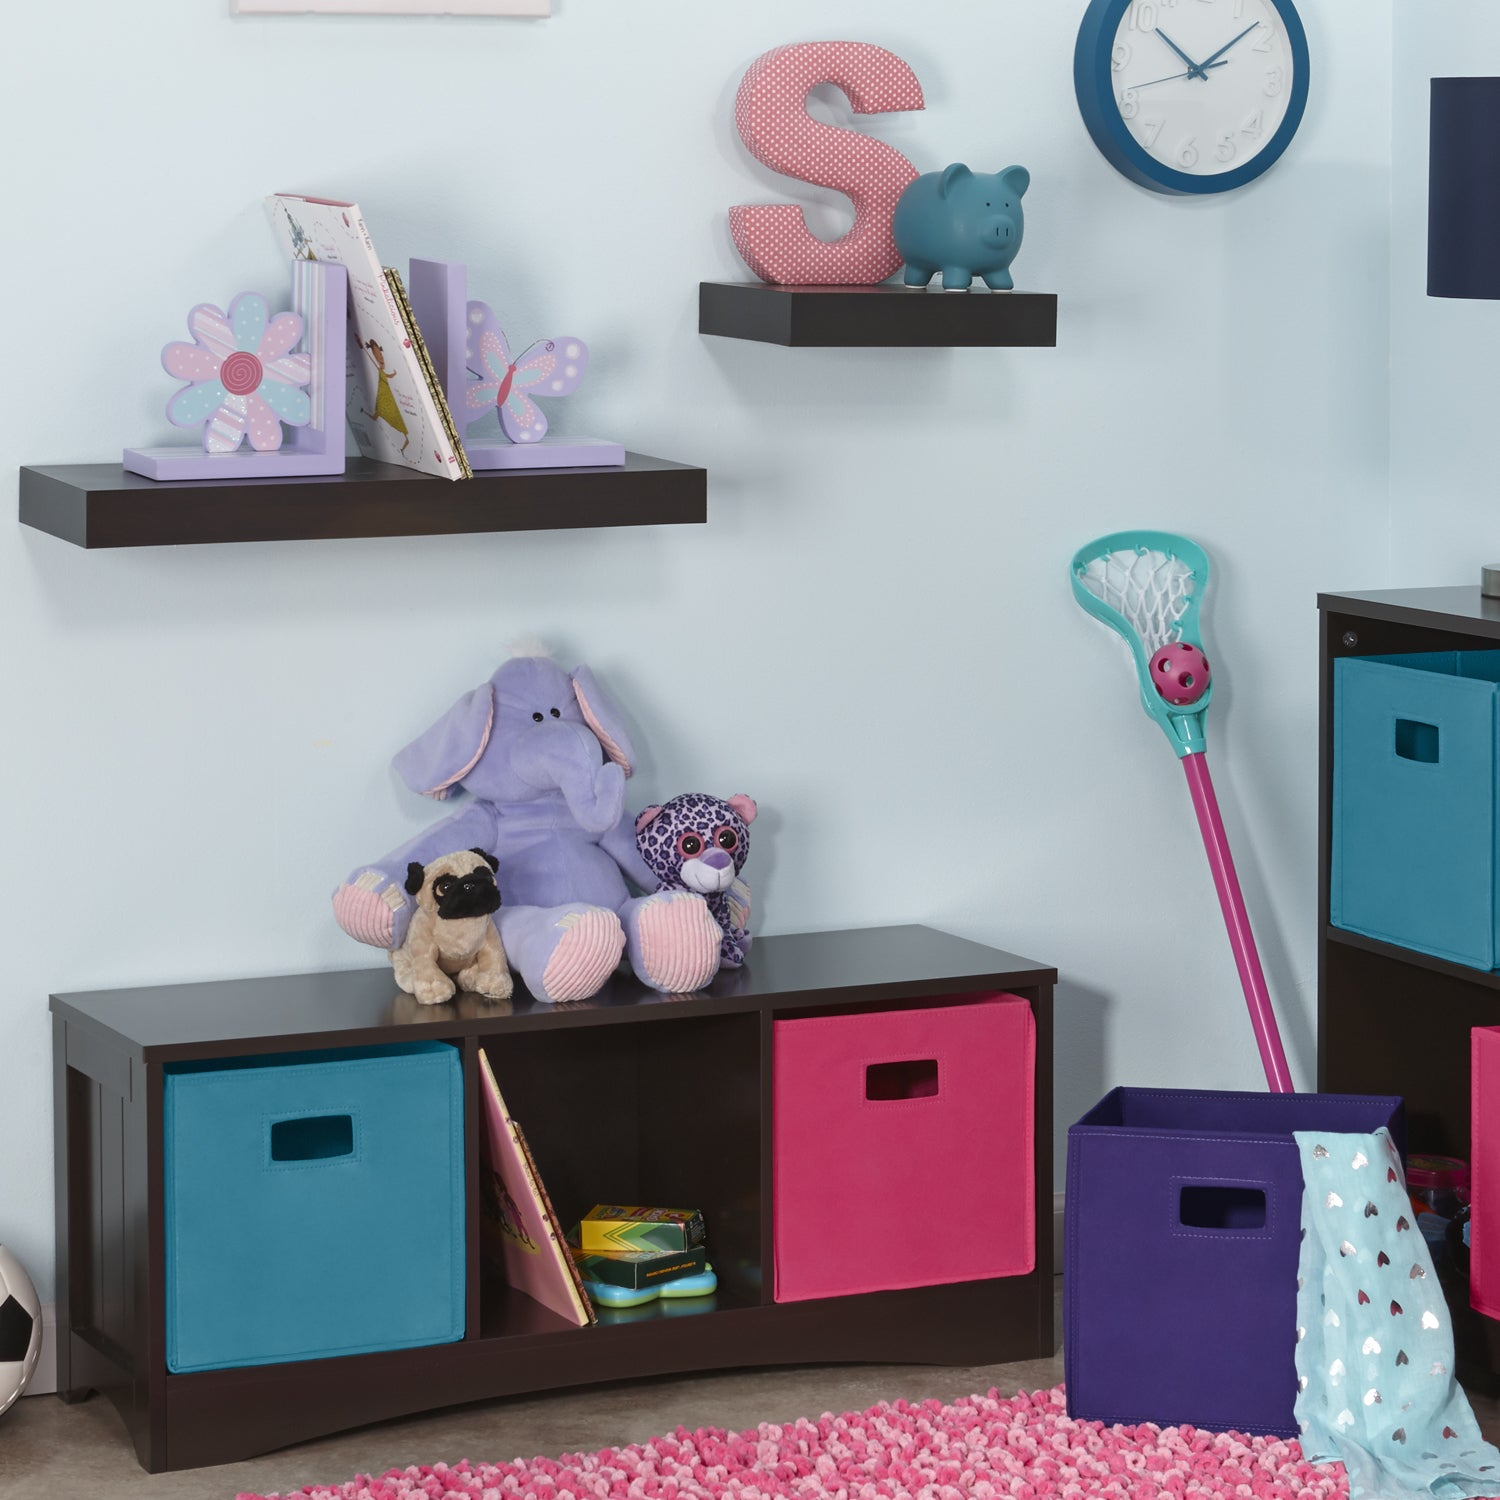 Incredible Details About Riverridge Espresso 3 Cubby Storage Bench For Kids Espresso Ocoug Best Dining Table And Chair Ideas Images Ocougorg